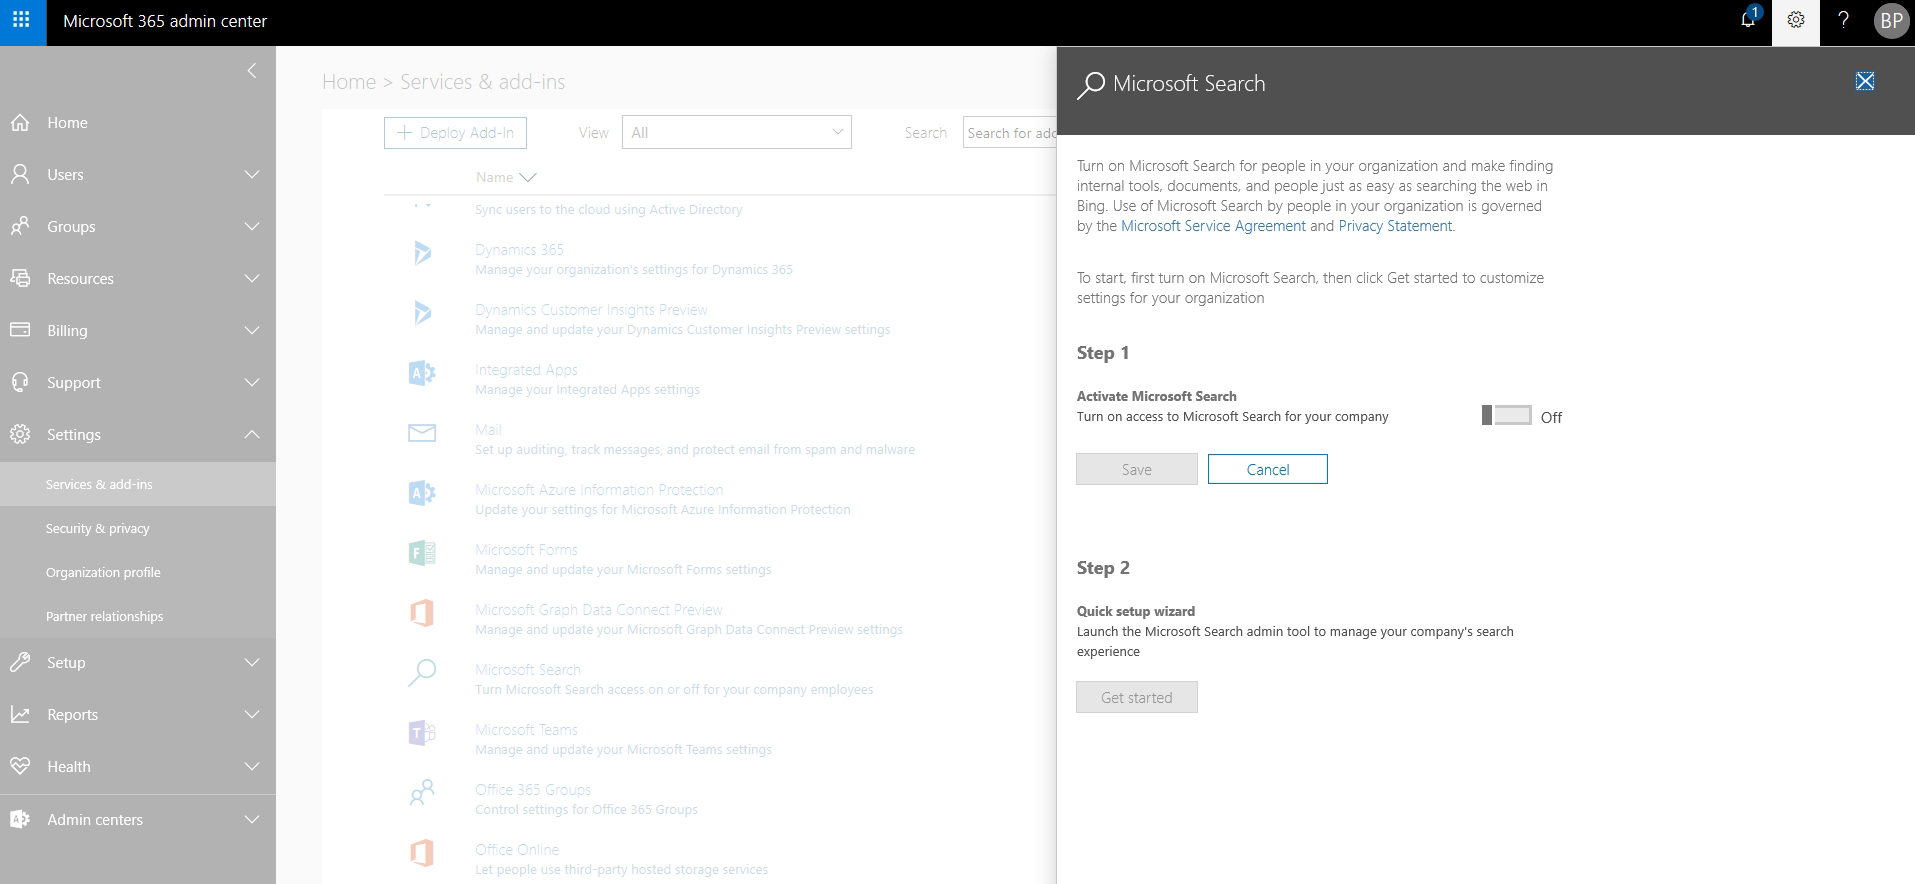 Enabling Microsoft Search Within Office 365 -- Redmondmag com